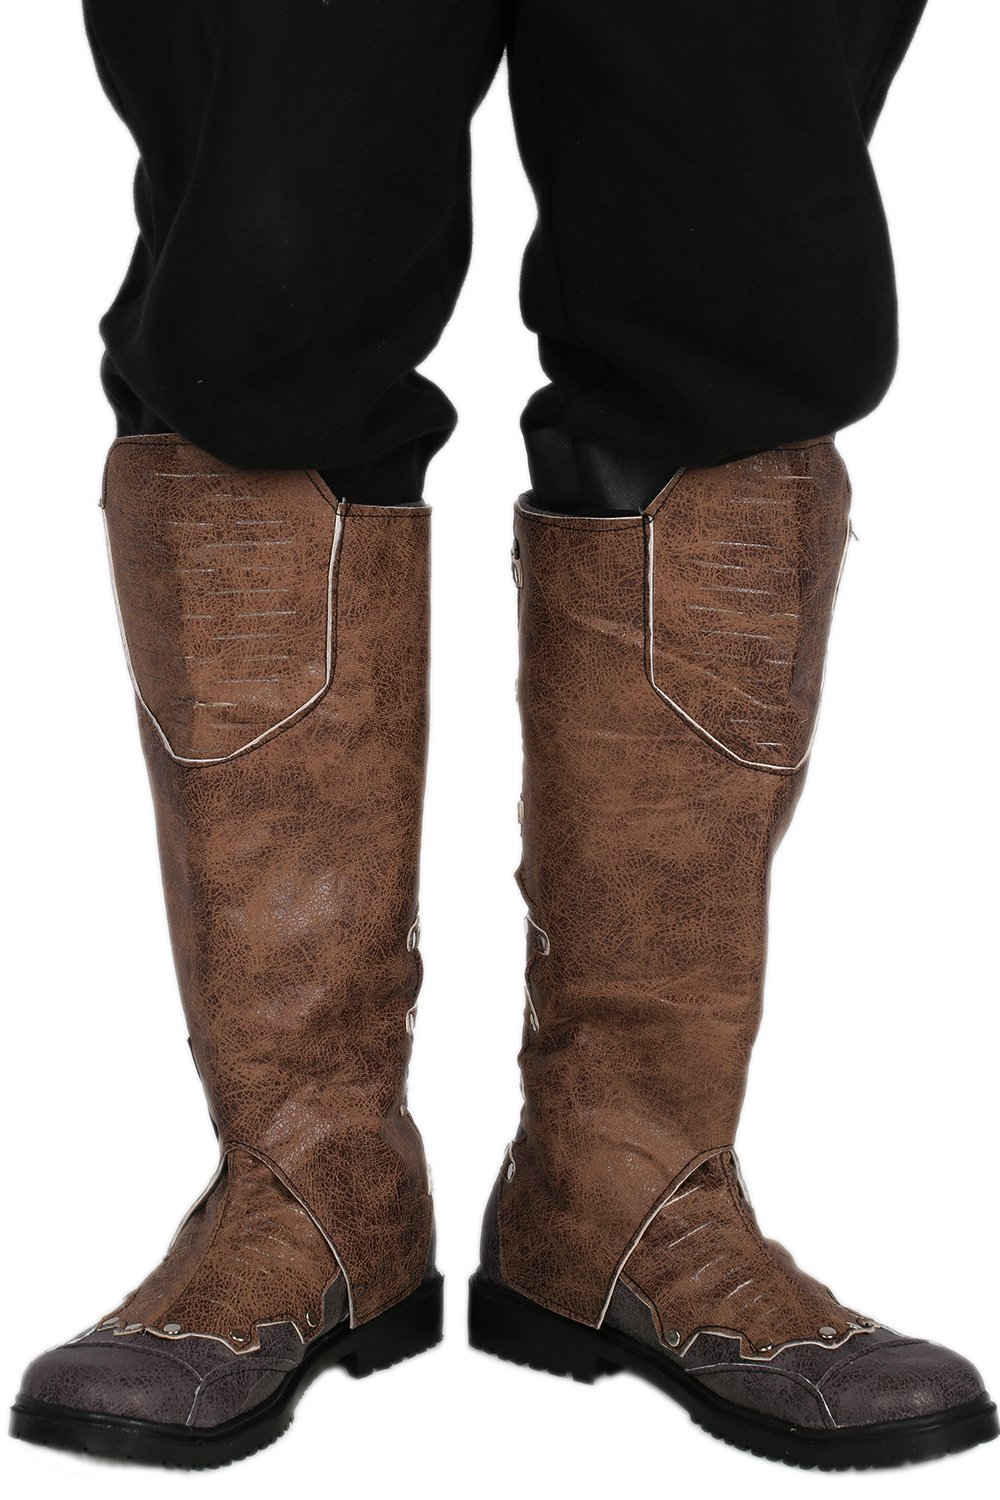 Star Quill Shoes Deluxe Brown PU Adult Cosplay Boots Costume Accessory 46 by CosplayRim